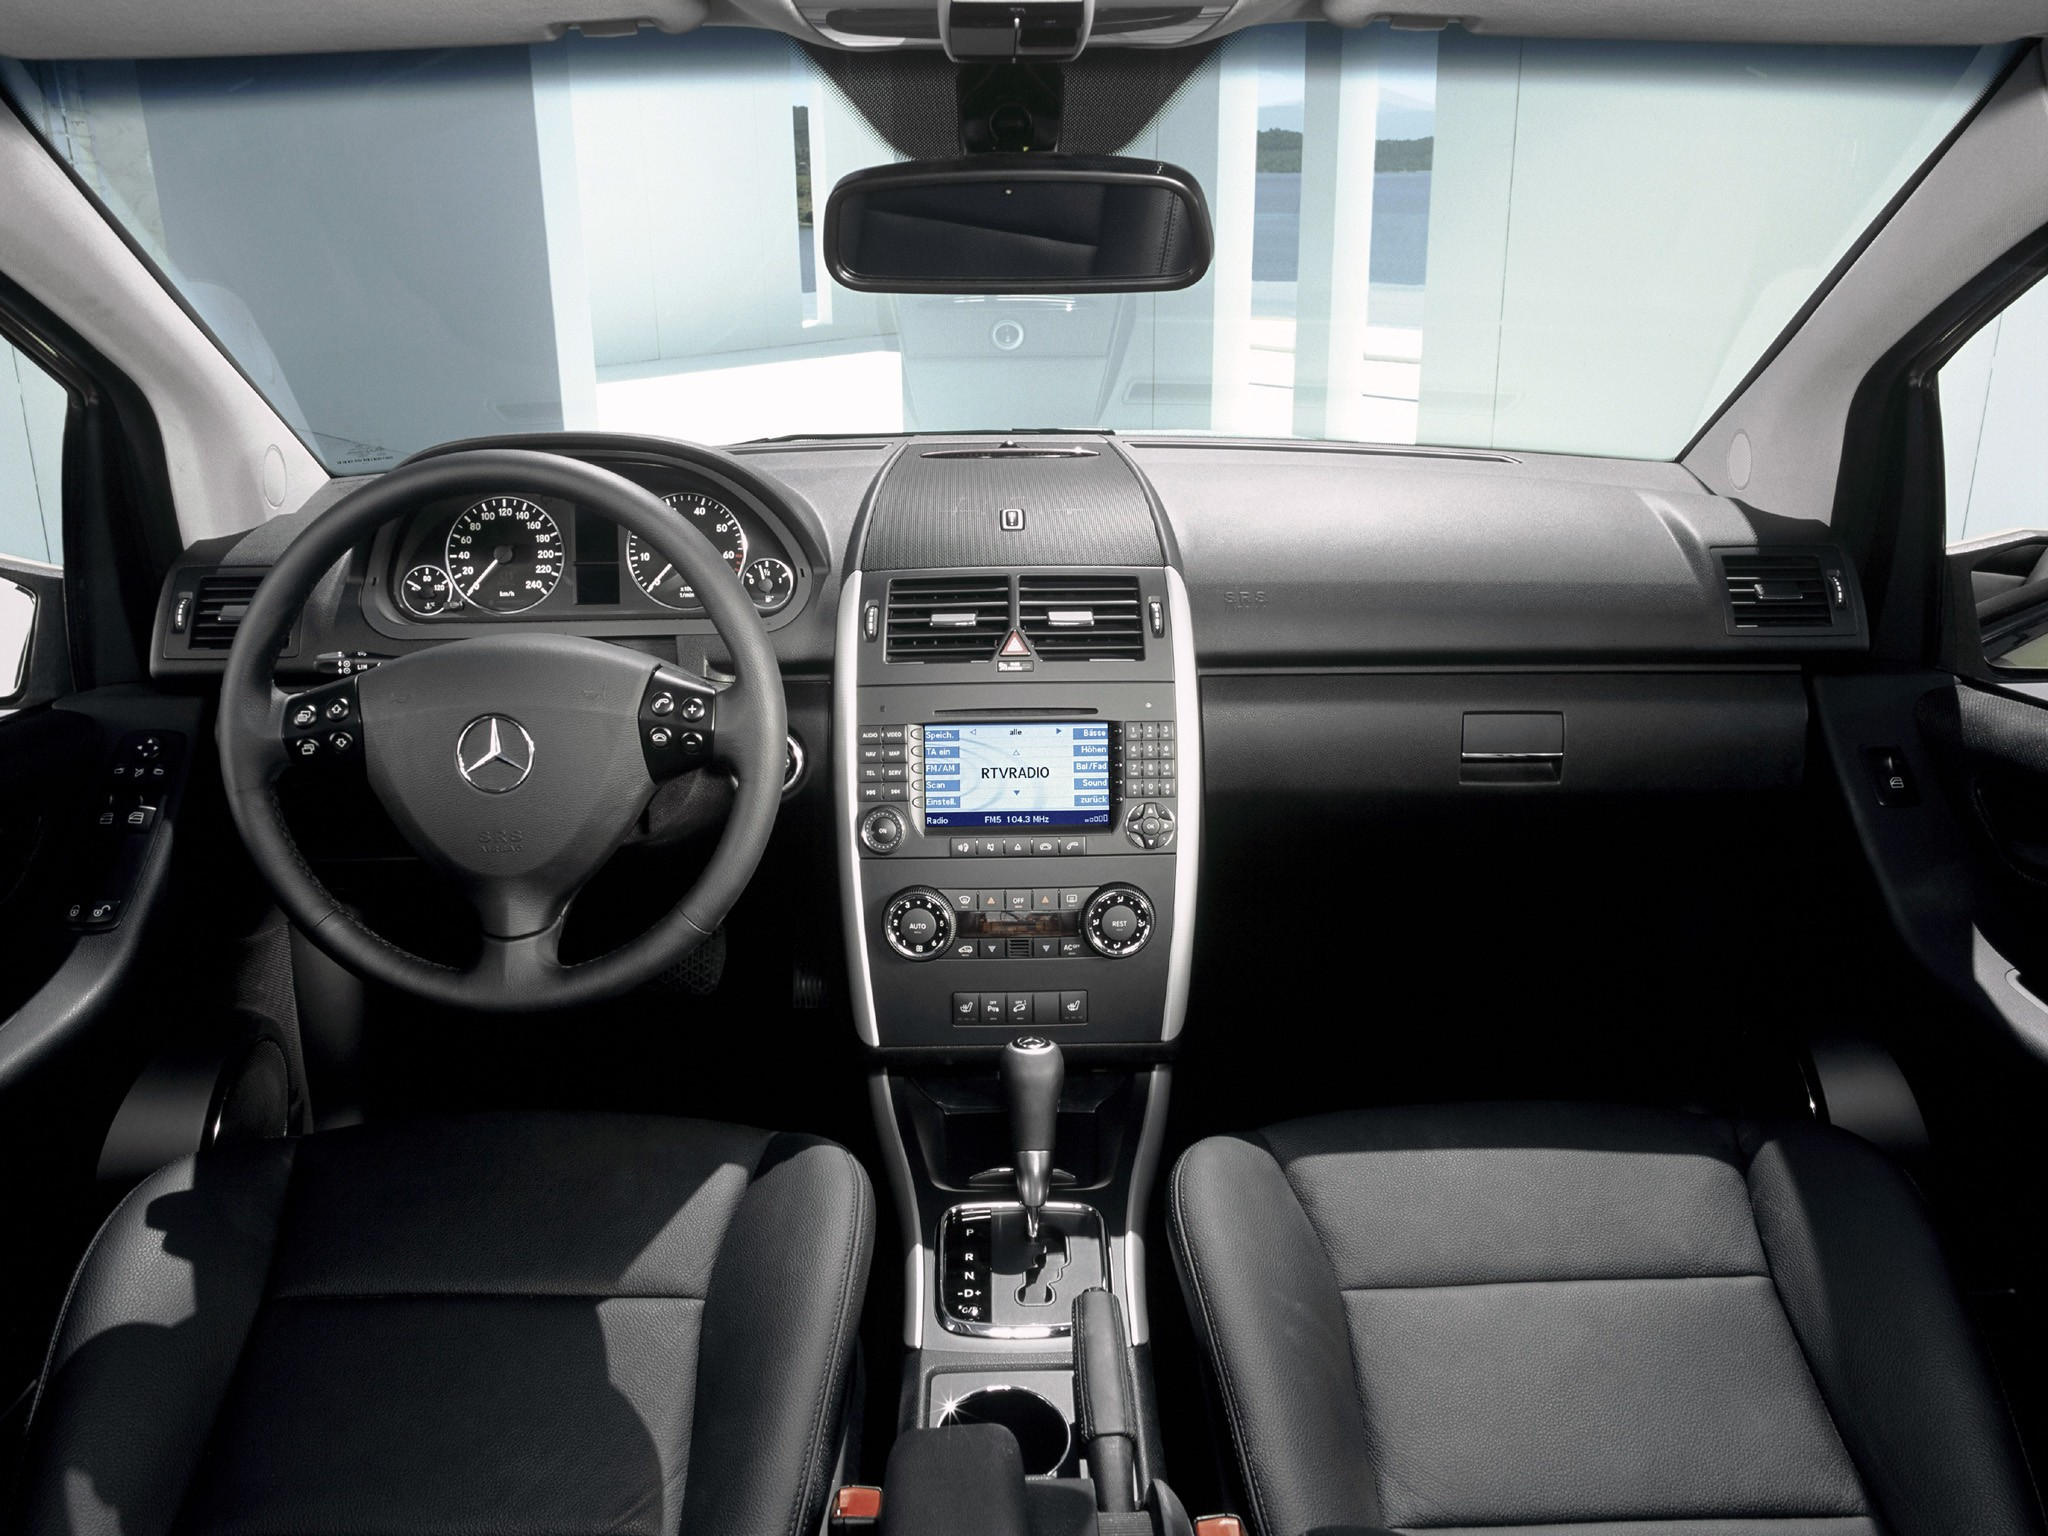 mercedes benz a klasse w169 specs 2004 2005 2006 2007 autoevolution. Black Bedroom Furniture Sets. Home Design Ideas